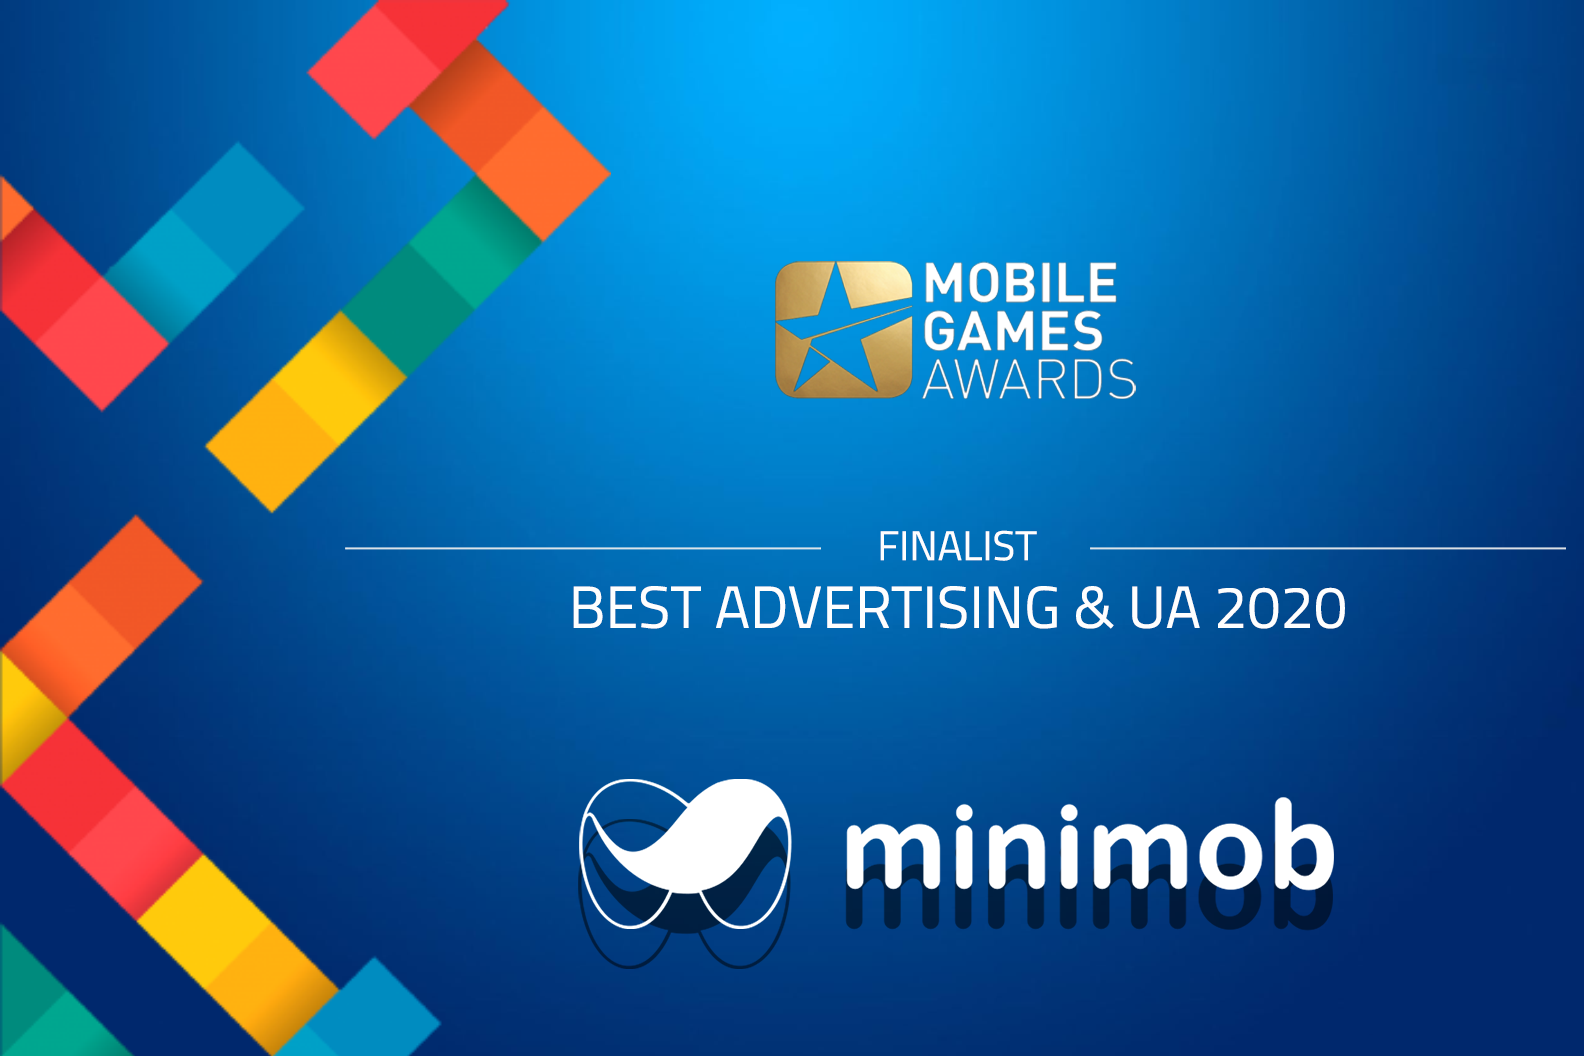 Best Advertising & UA @ Mobile Games Awards Finalist 2020